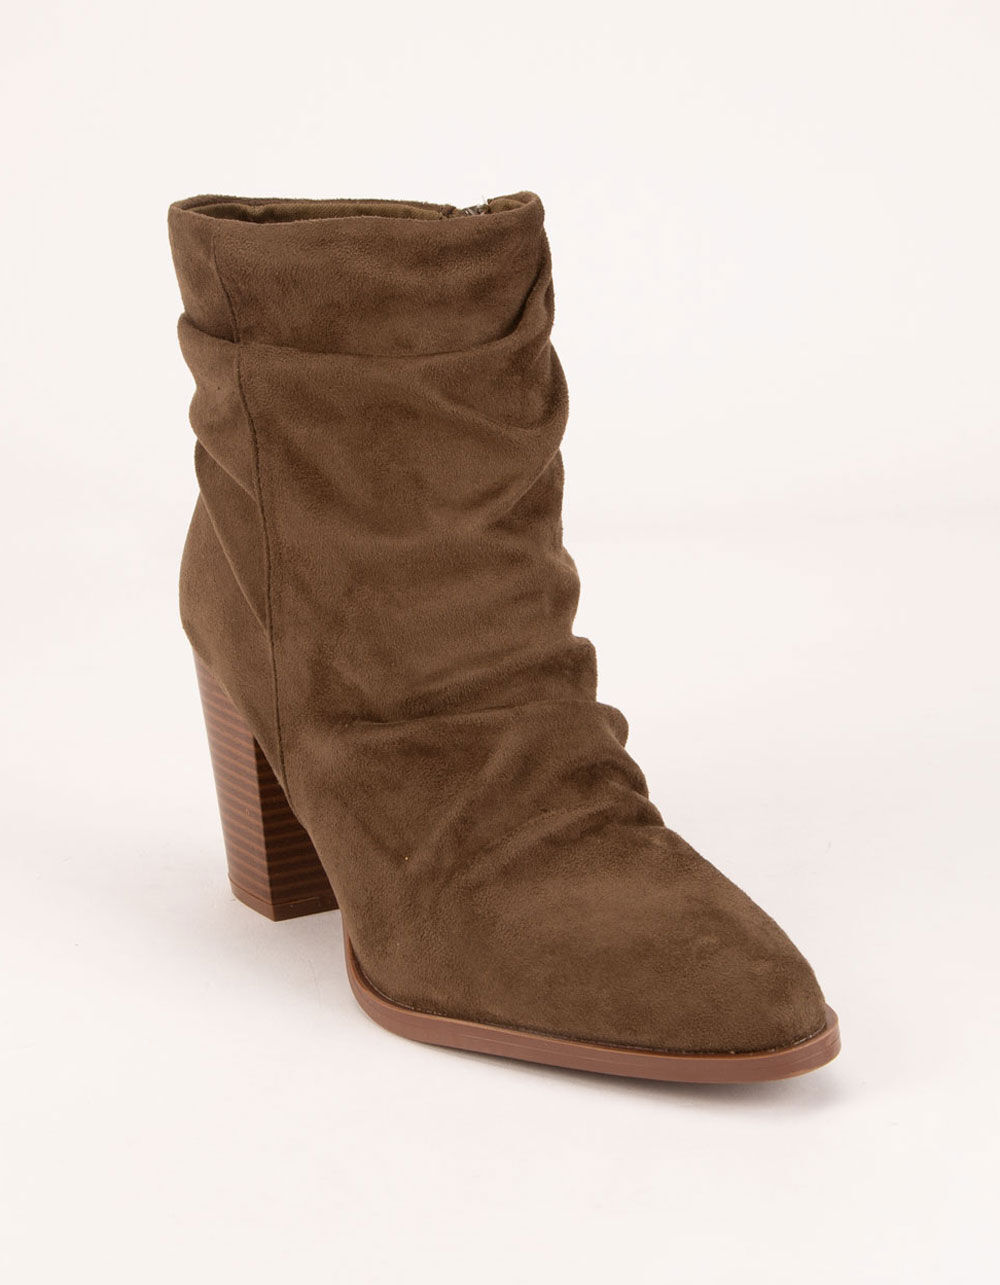 QUPID Ruched Khaki Booties